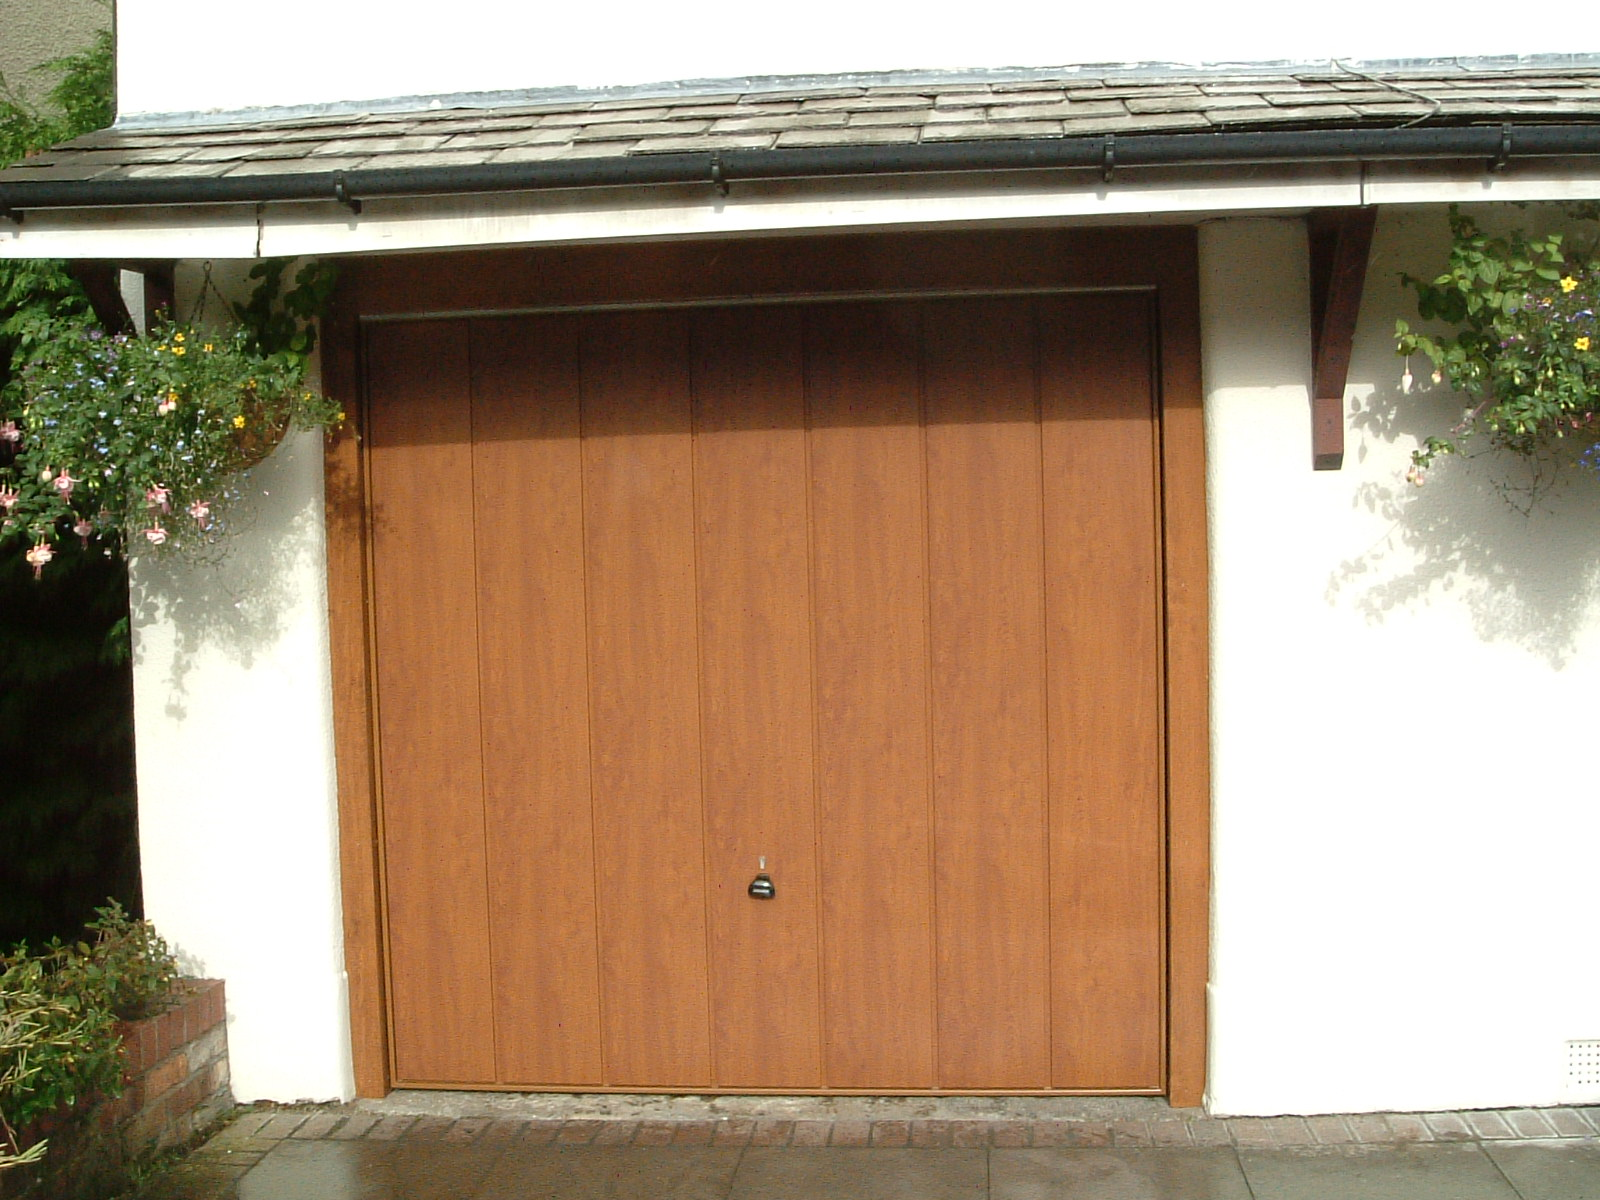 1200 #935E38 Golden Oak Sherwood Garage Door picture/photo Oak Garage Doors 38491600